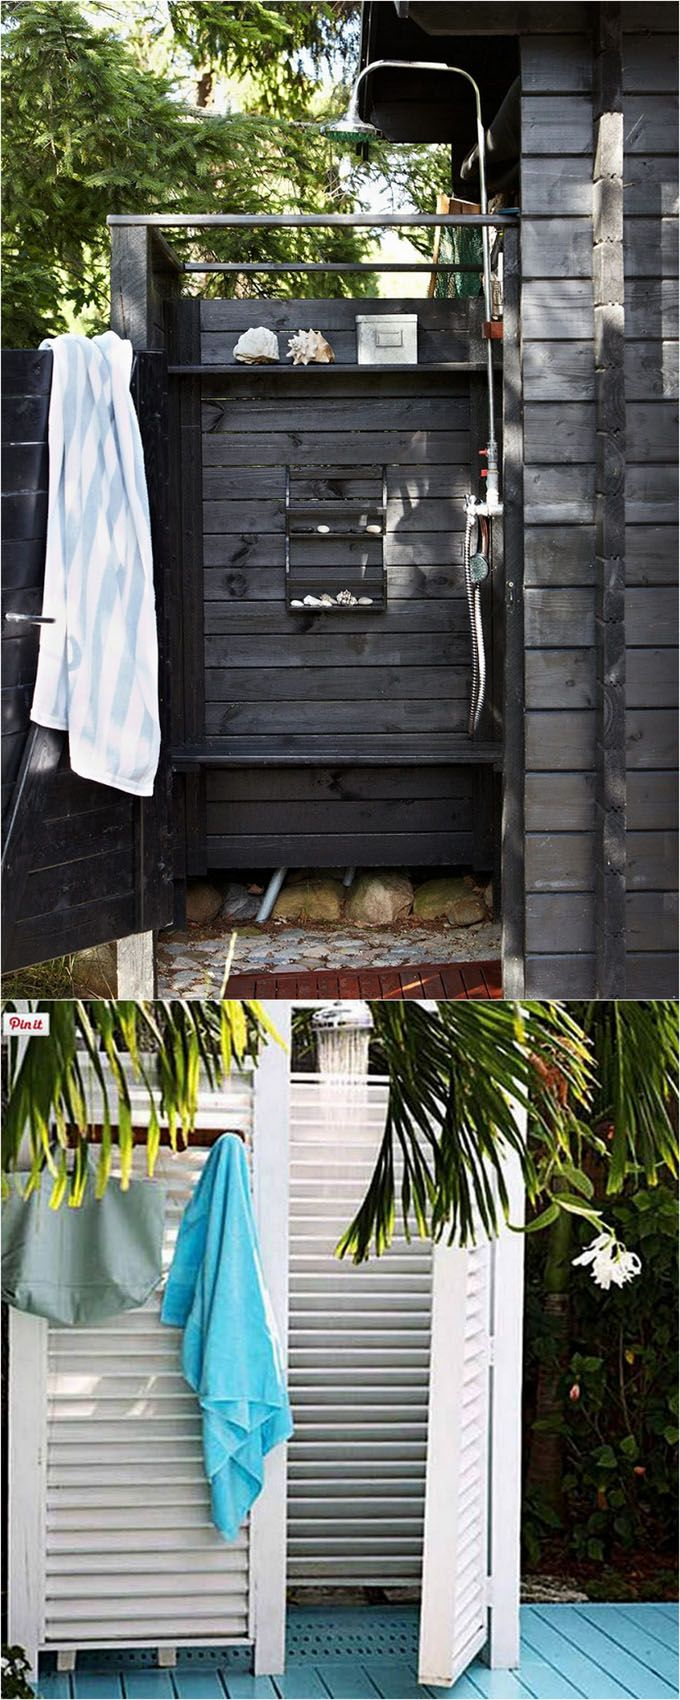 32 inspiring DIY outdoor showers: lots of ideas on how to build enclosures with simple materials, best outdoor shower fixtures, creative designs and more!